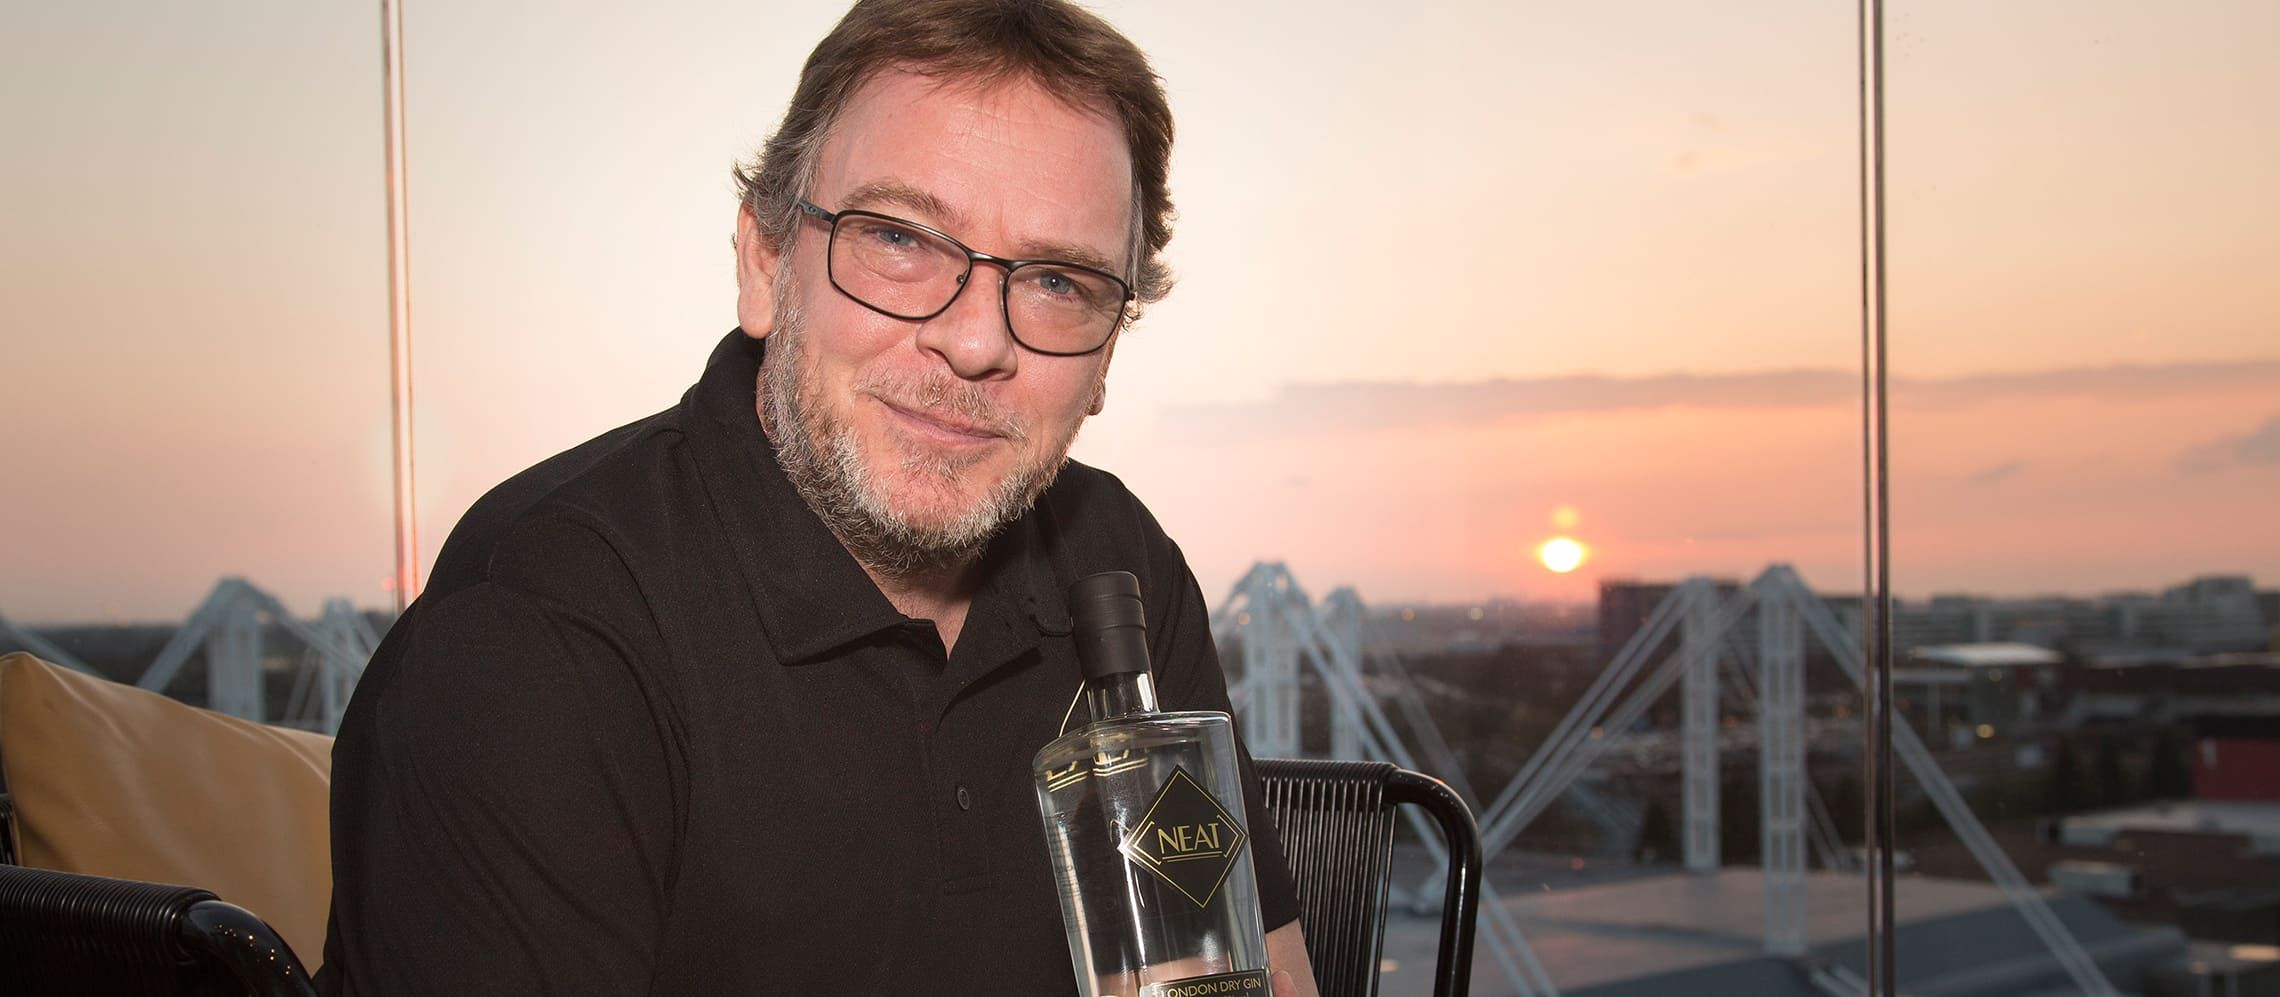 Photo for: 30 Minutes with Adam Woodyatt